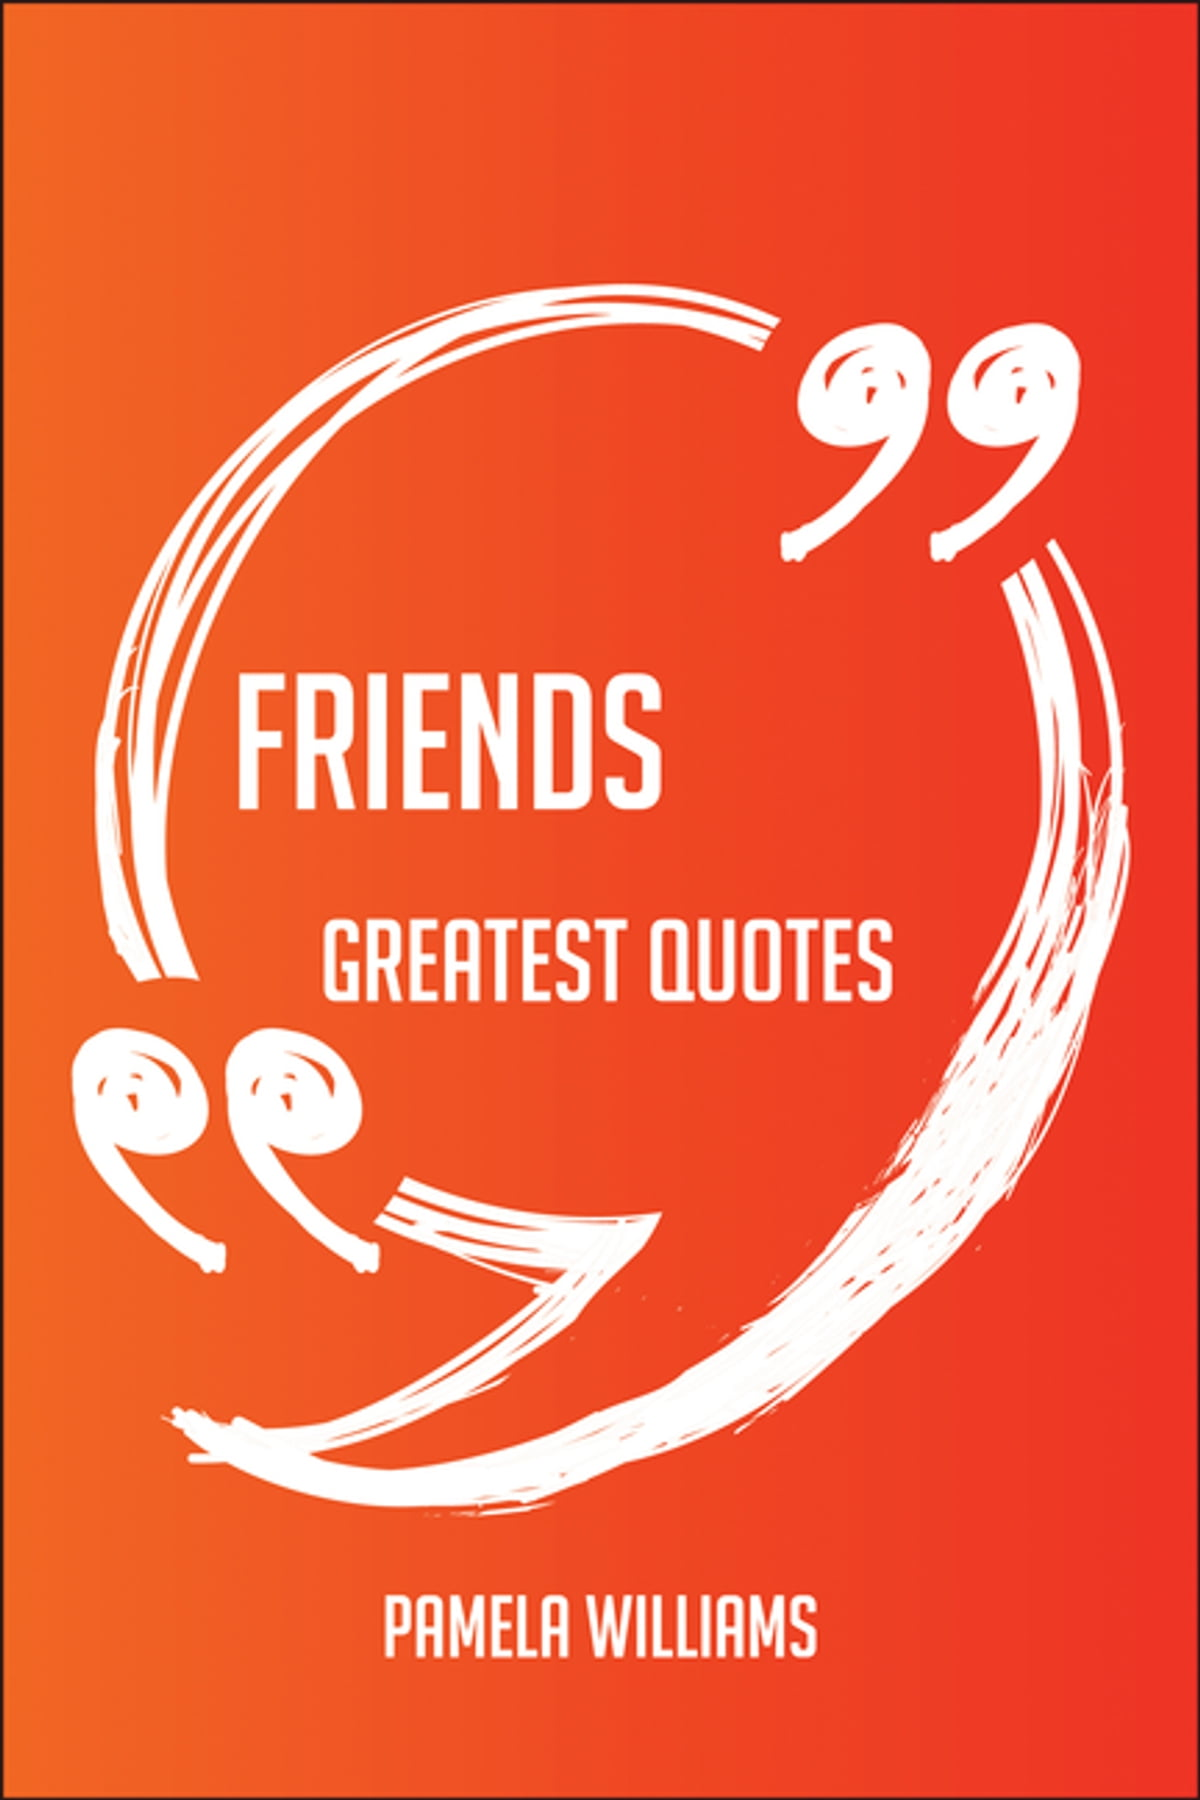 Friends Greatest Quotes - Quick, Short, Medium Or Long Quotes. Find The  Perfect Friends Quotations For All Occasions - Spicing Up Letters,  Speeches, ...